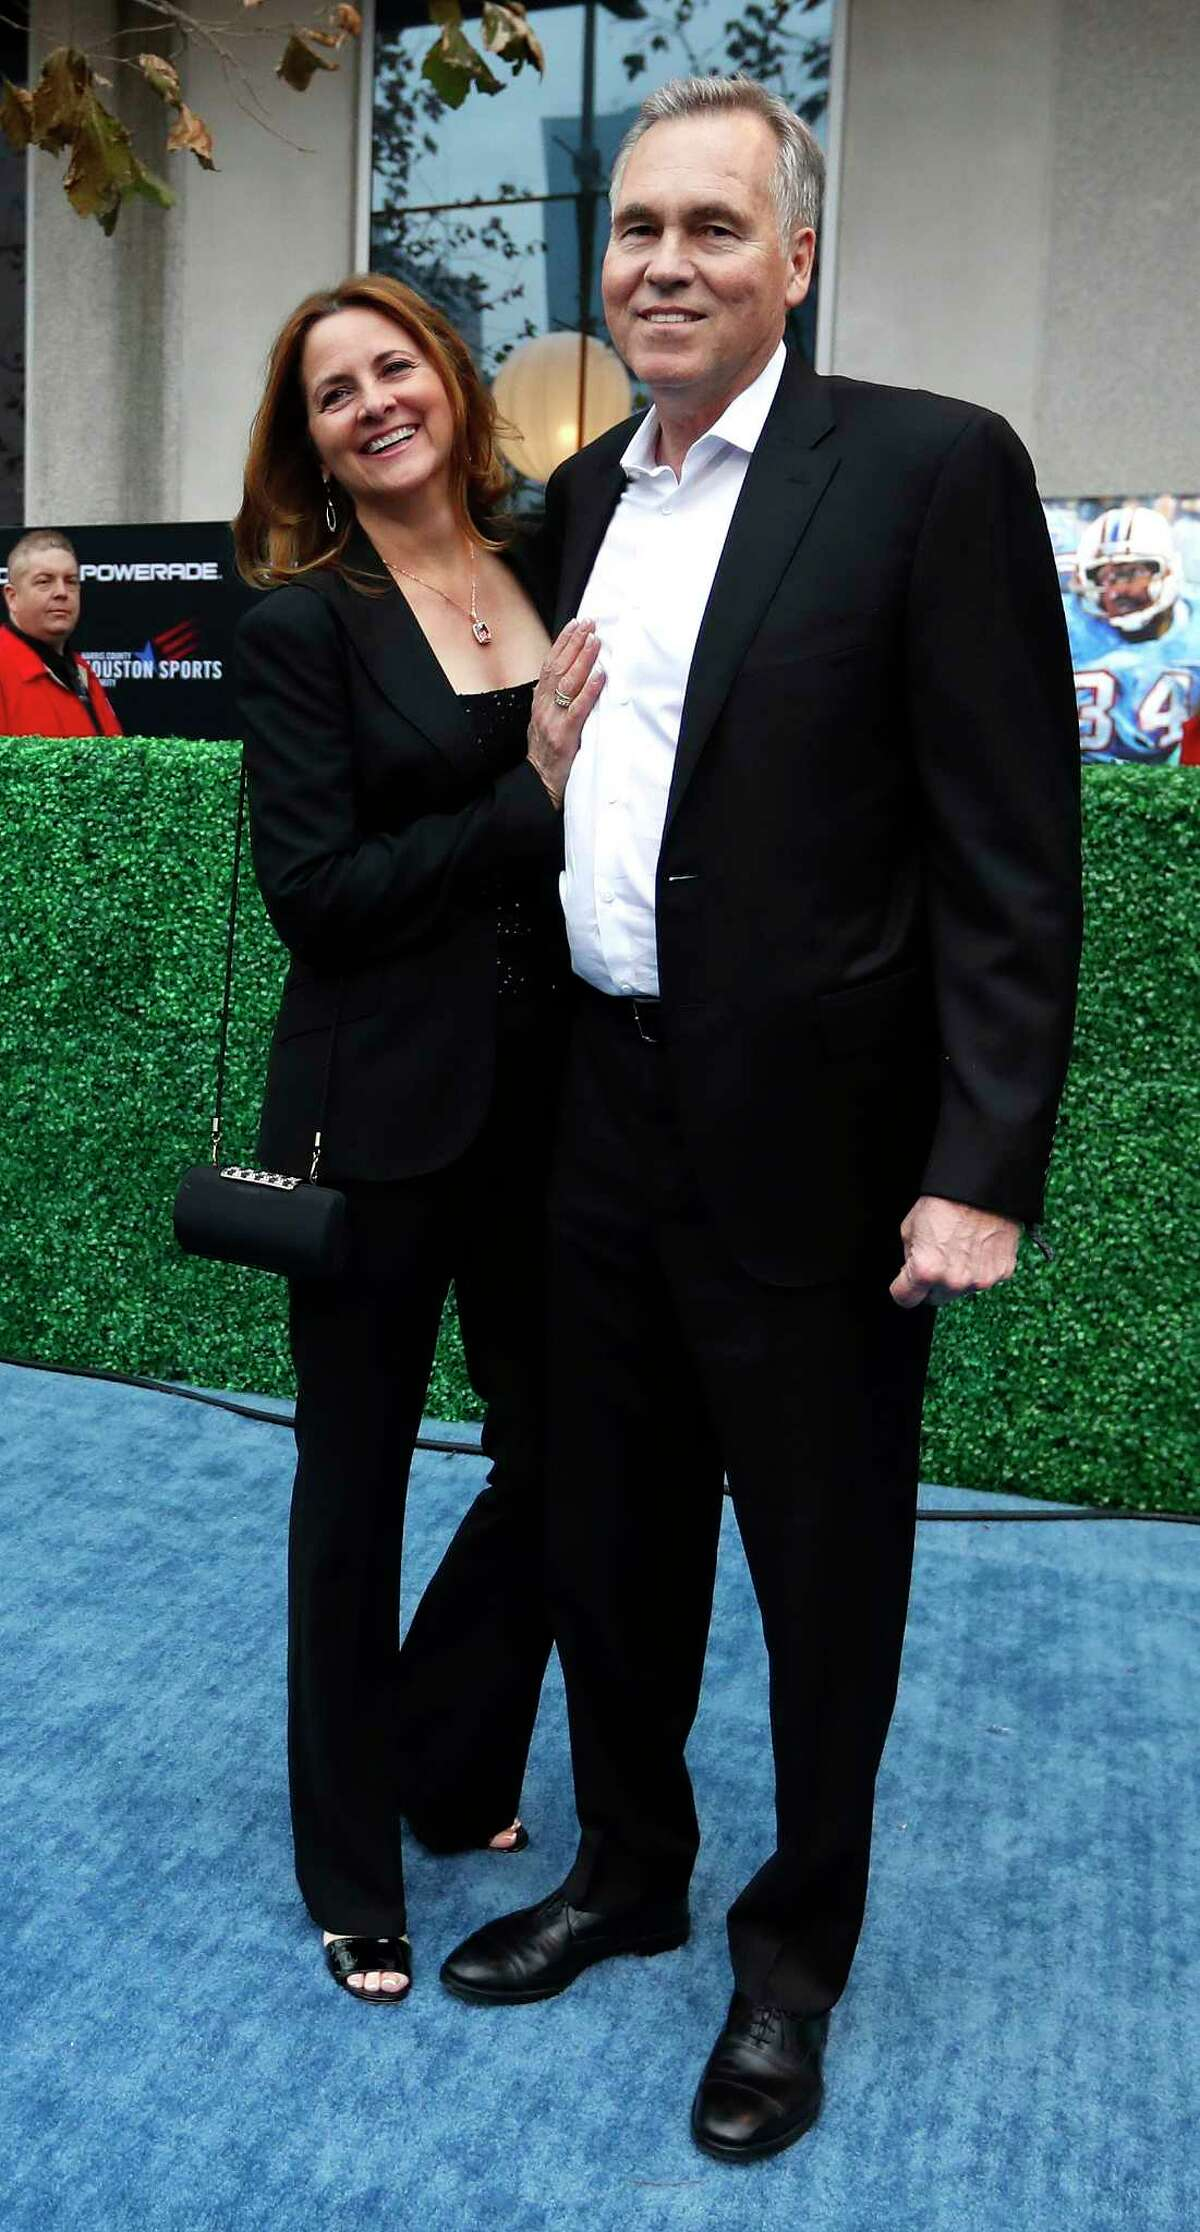 D'Antoni and his wife, Laurel, rock the blue carpet before the start of the Houston Sports Awards at the Hilton Americas earlier this month. They met while he was playing basketball in Italy and she was a fashion model.